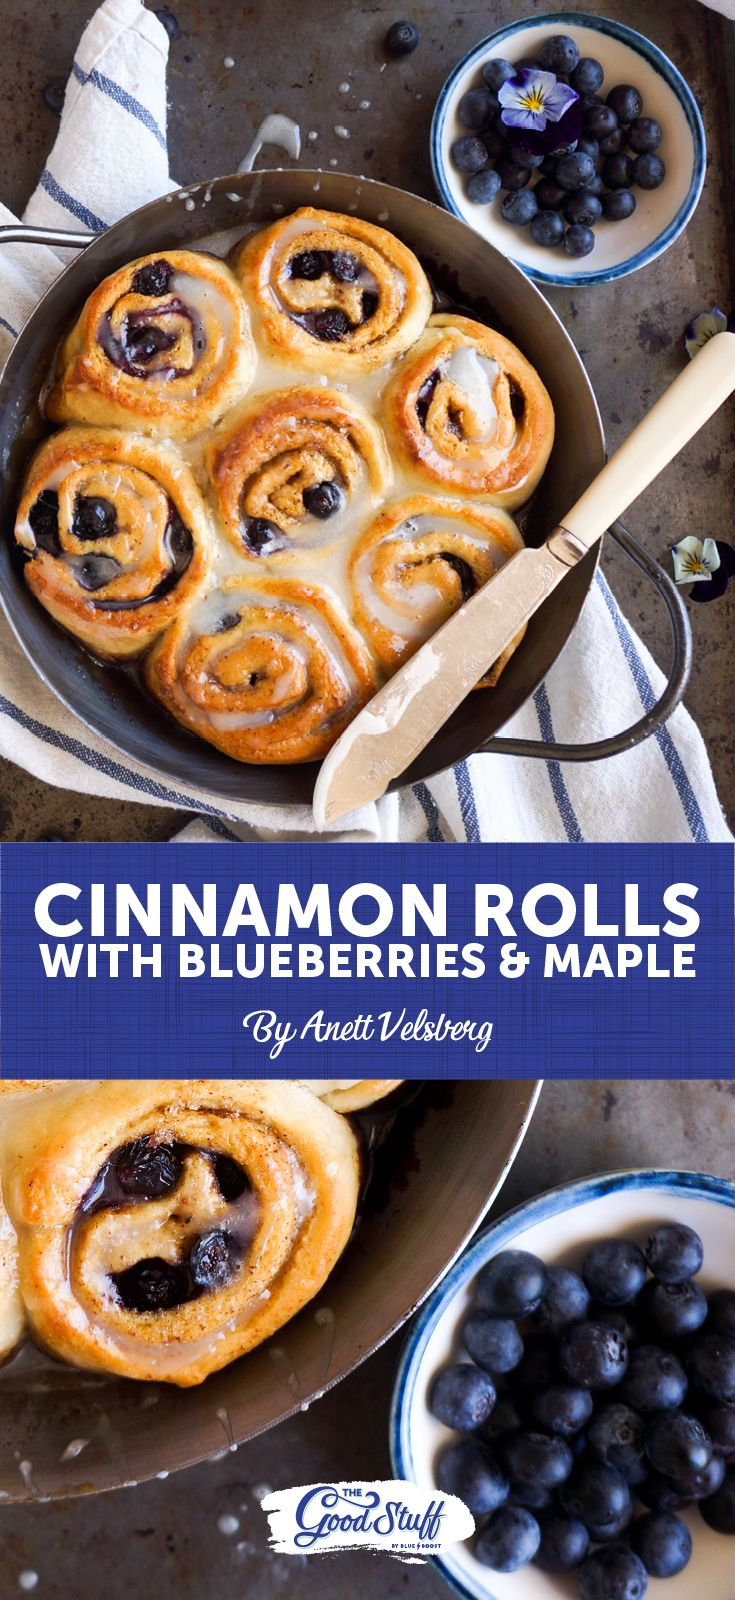 Blueberry and maple syrup cinnamon rolls... Oh! and totally VEGAN!  Now who can resist that?  #CinnamonRolls #Recipe #Vegan #Maple #Blueberry #Blueberries #Bakes #Bake